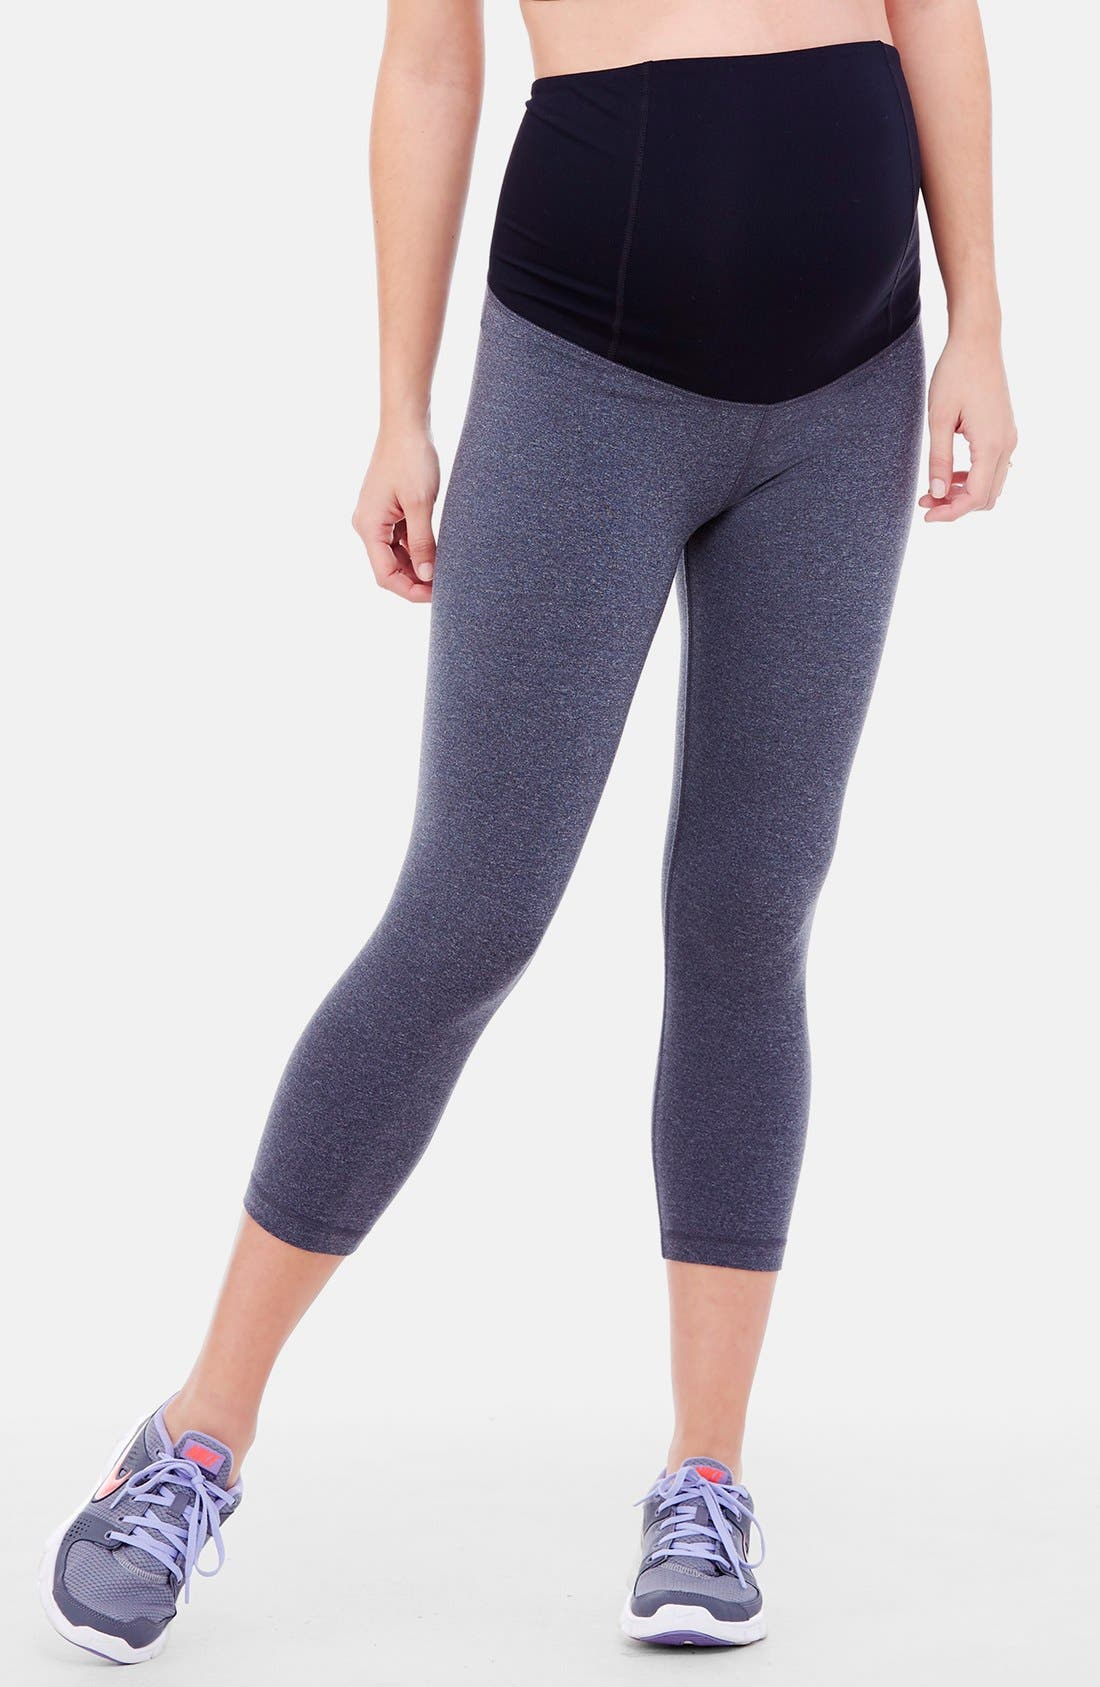 INGRID & ISABEL<SUP>®</SUP>, Active Maternity Capri Pants with Crossover Panel, Main thumbnail 1, color, DARK HEATHER GREY